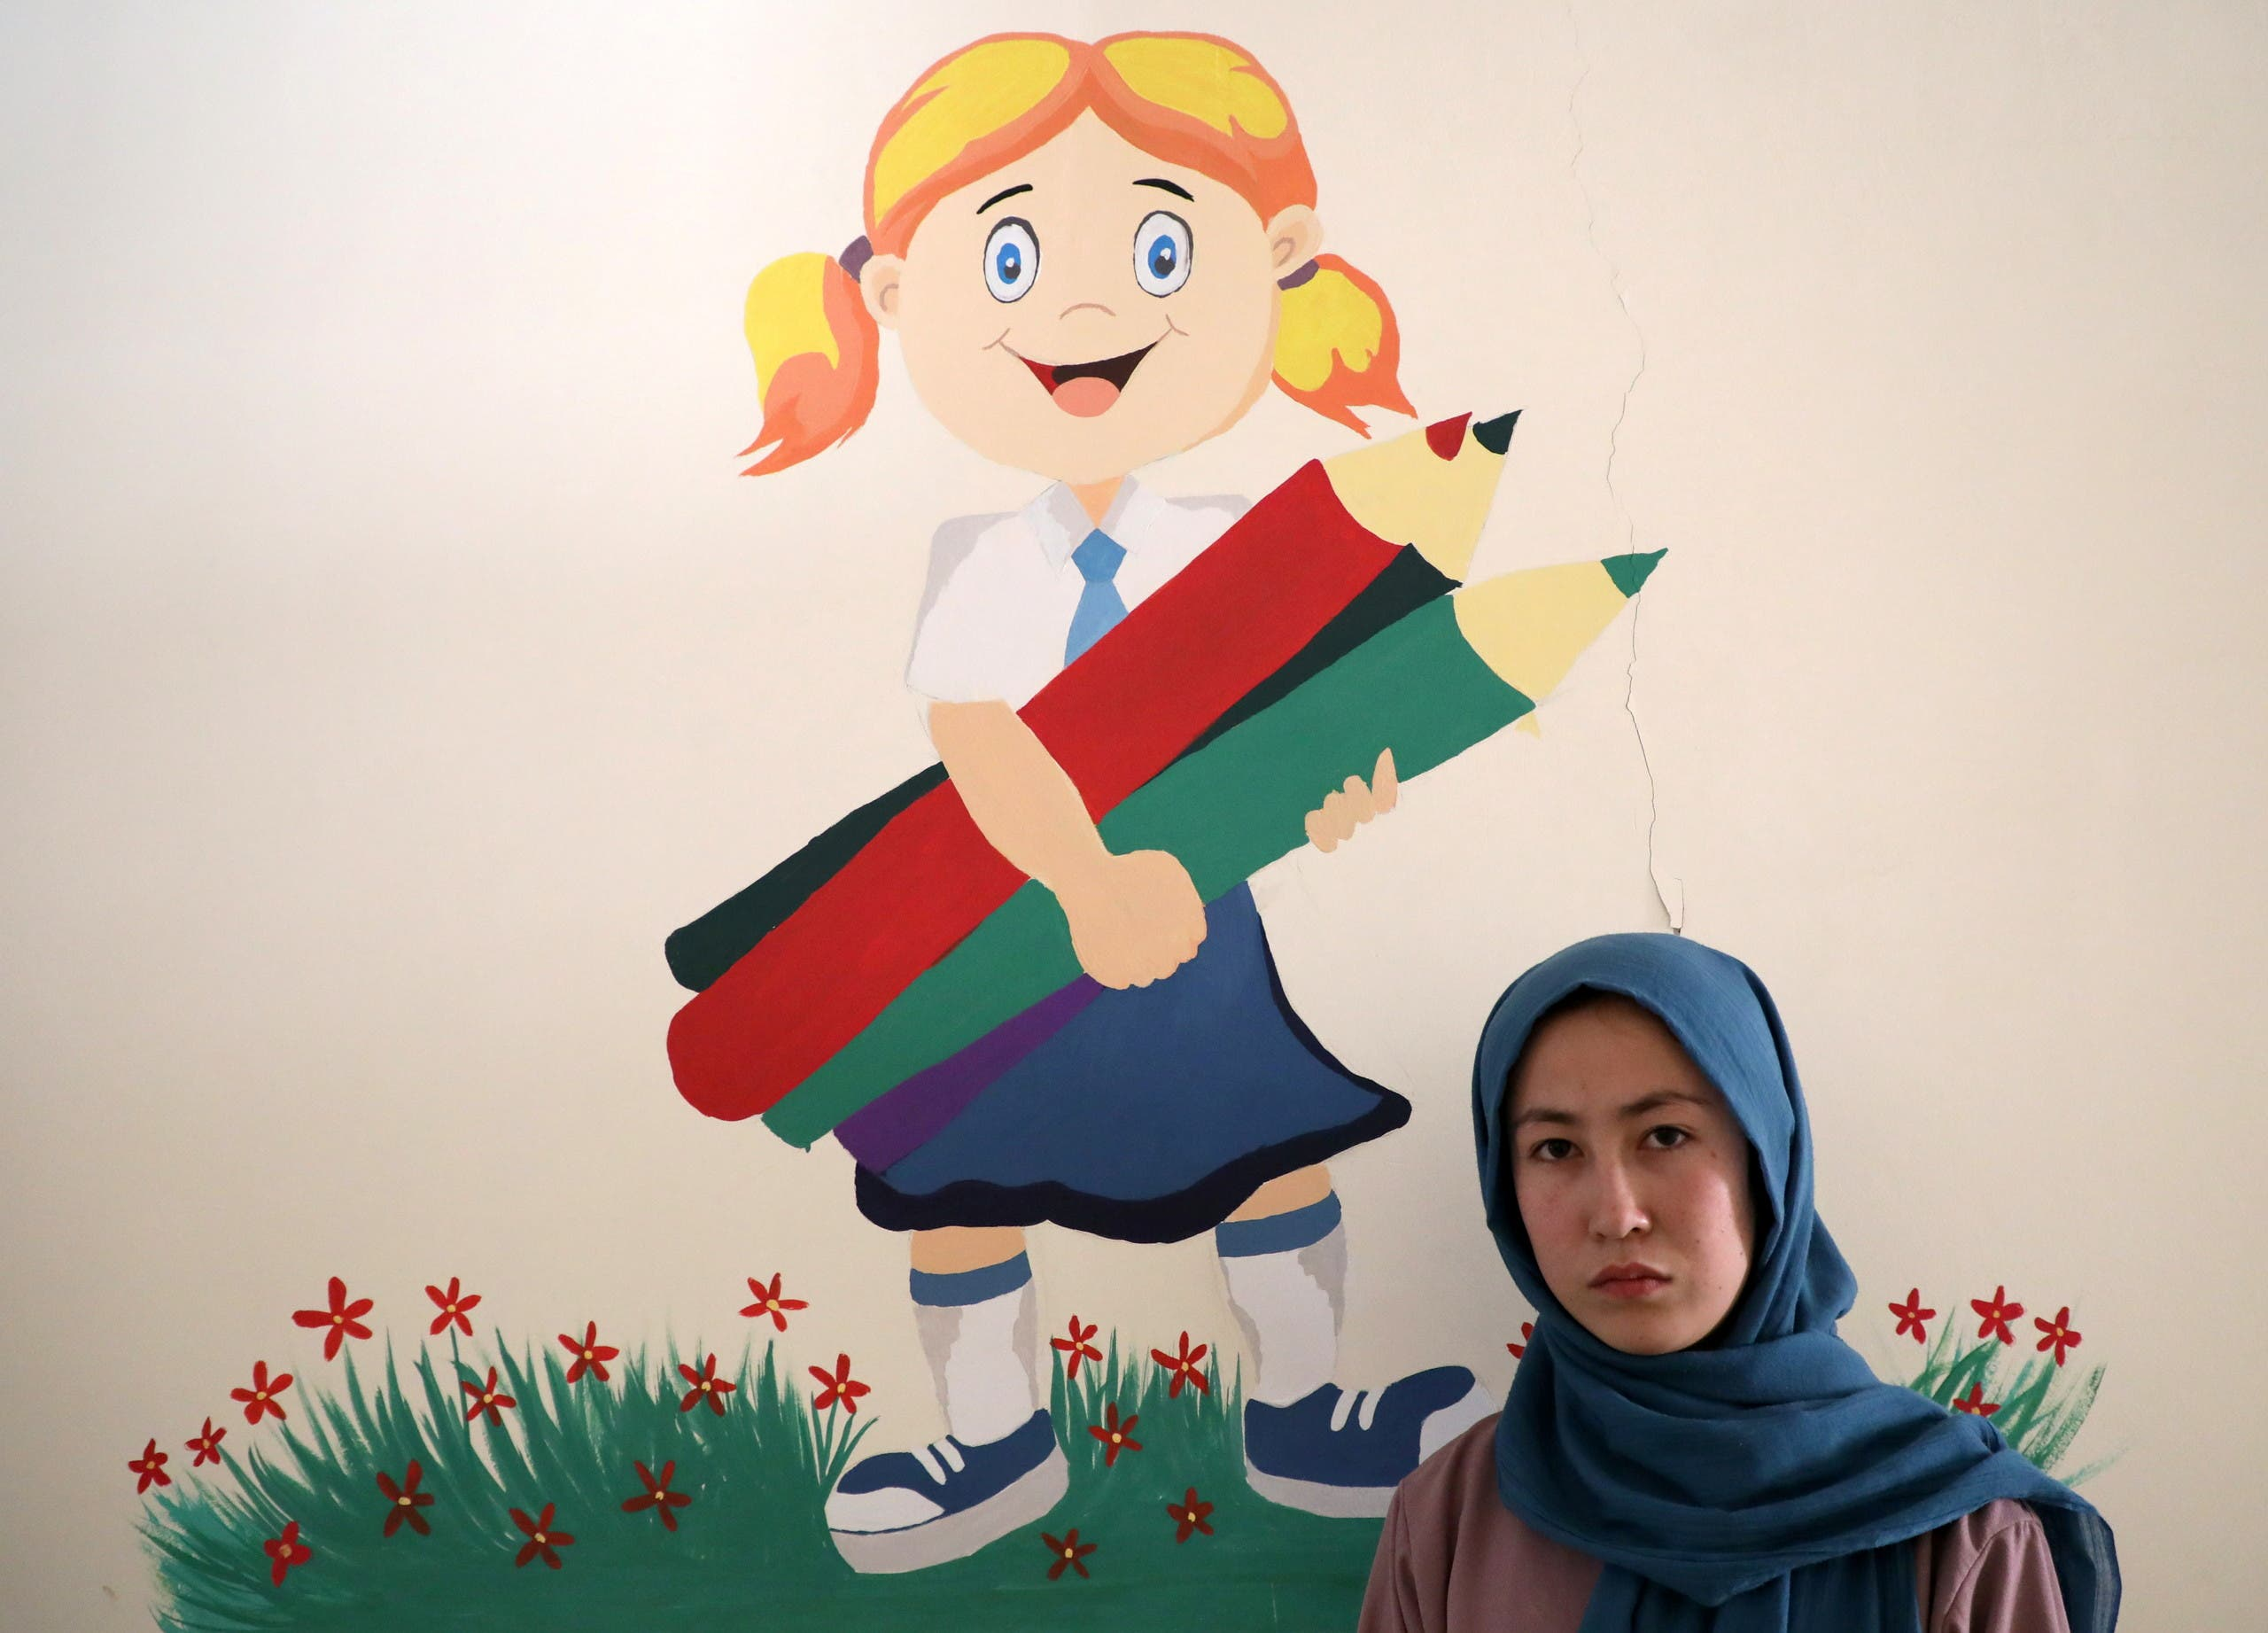 Fatima Noori, 15, poses for a photo as she arrives to attend psychotherapy class after a massive bomb exploded outside her school, that killed at least 80 students in Kabul, Afghanistan May 26, 2021. Picture taken May 26, 2021. (File photo: Reuters)